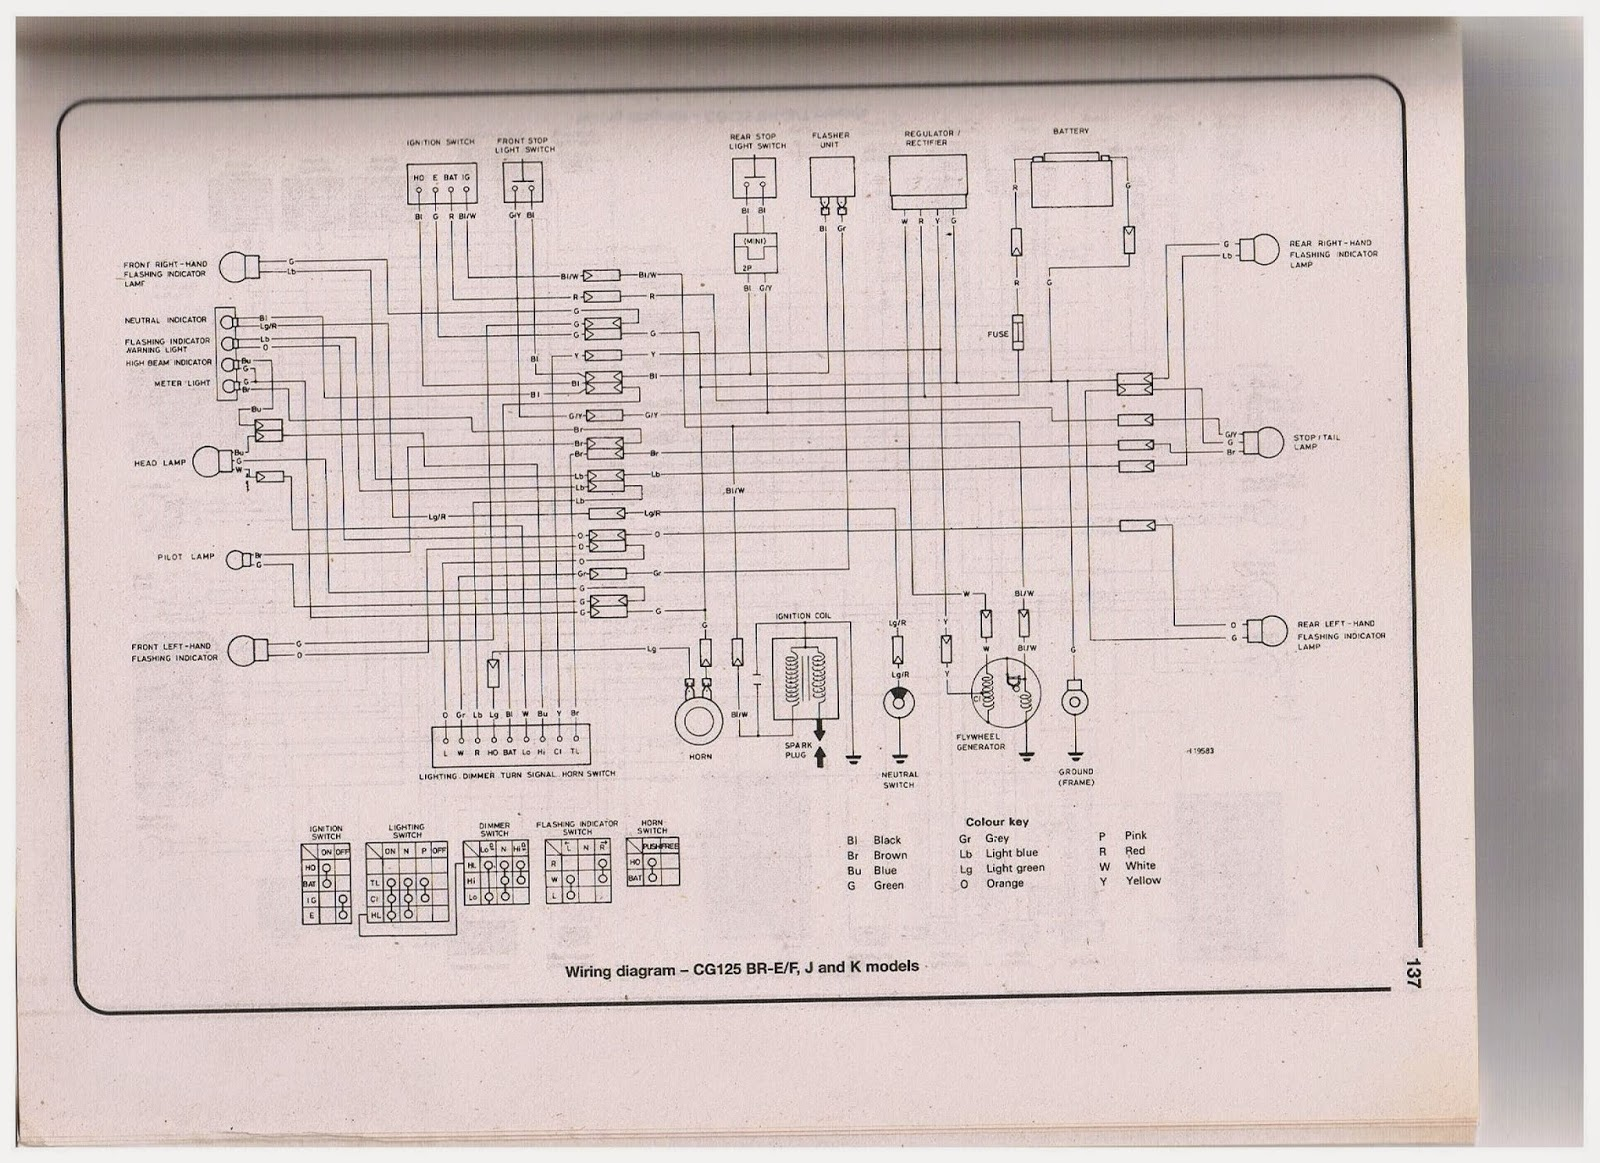 002 honda cg 125 owner blog honda cg 125 wiring diagrams and kokusan denki cdi wiring diagram at highcare.asia